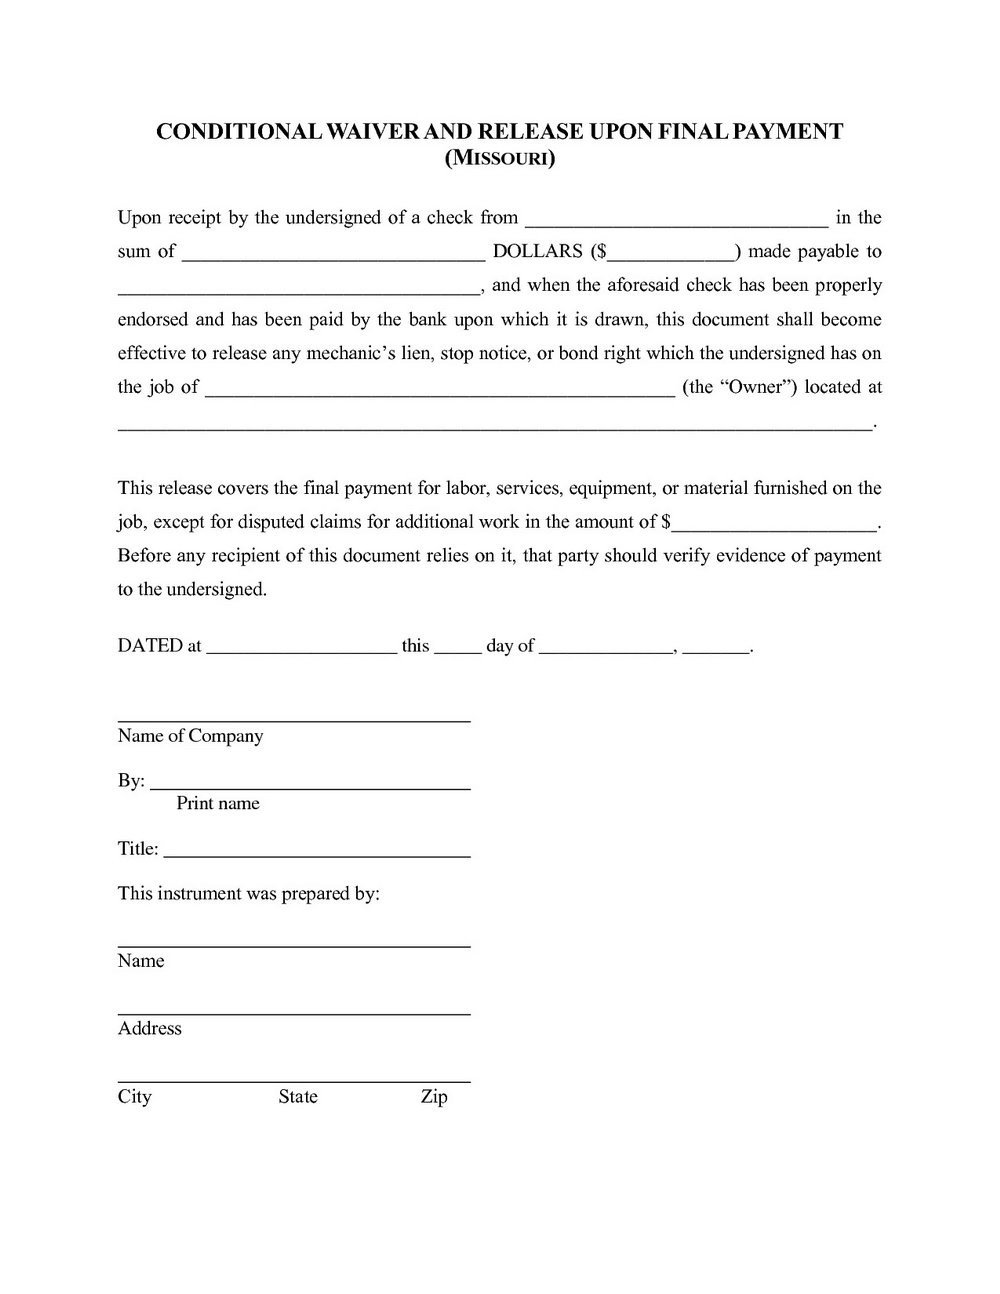 Free Mechanics Lien form Texas Free W9 form Texas forms 4130